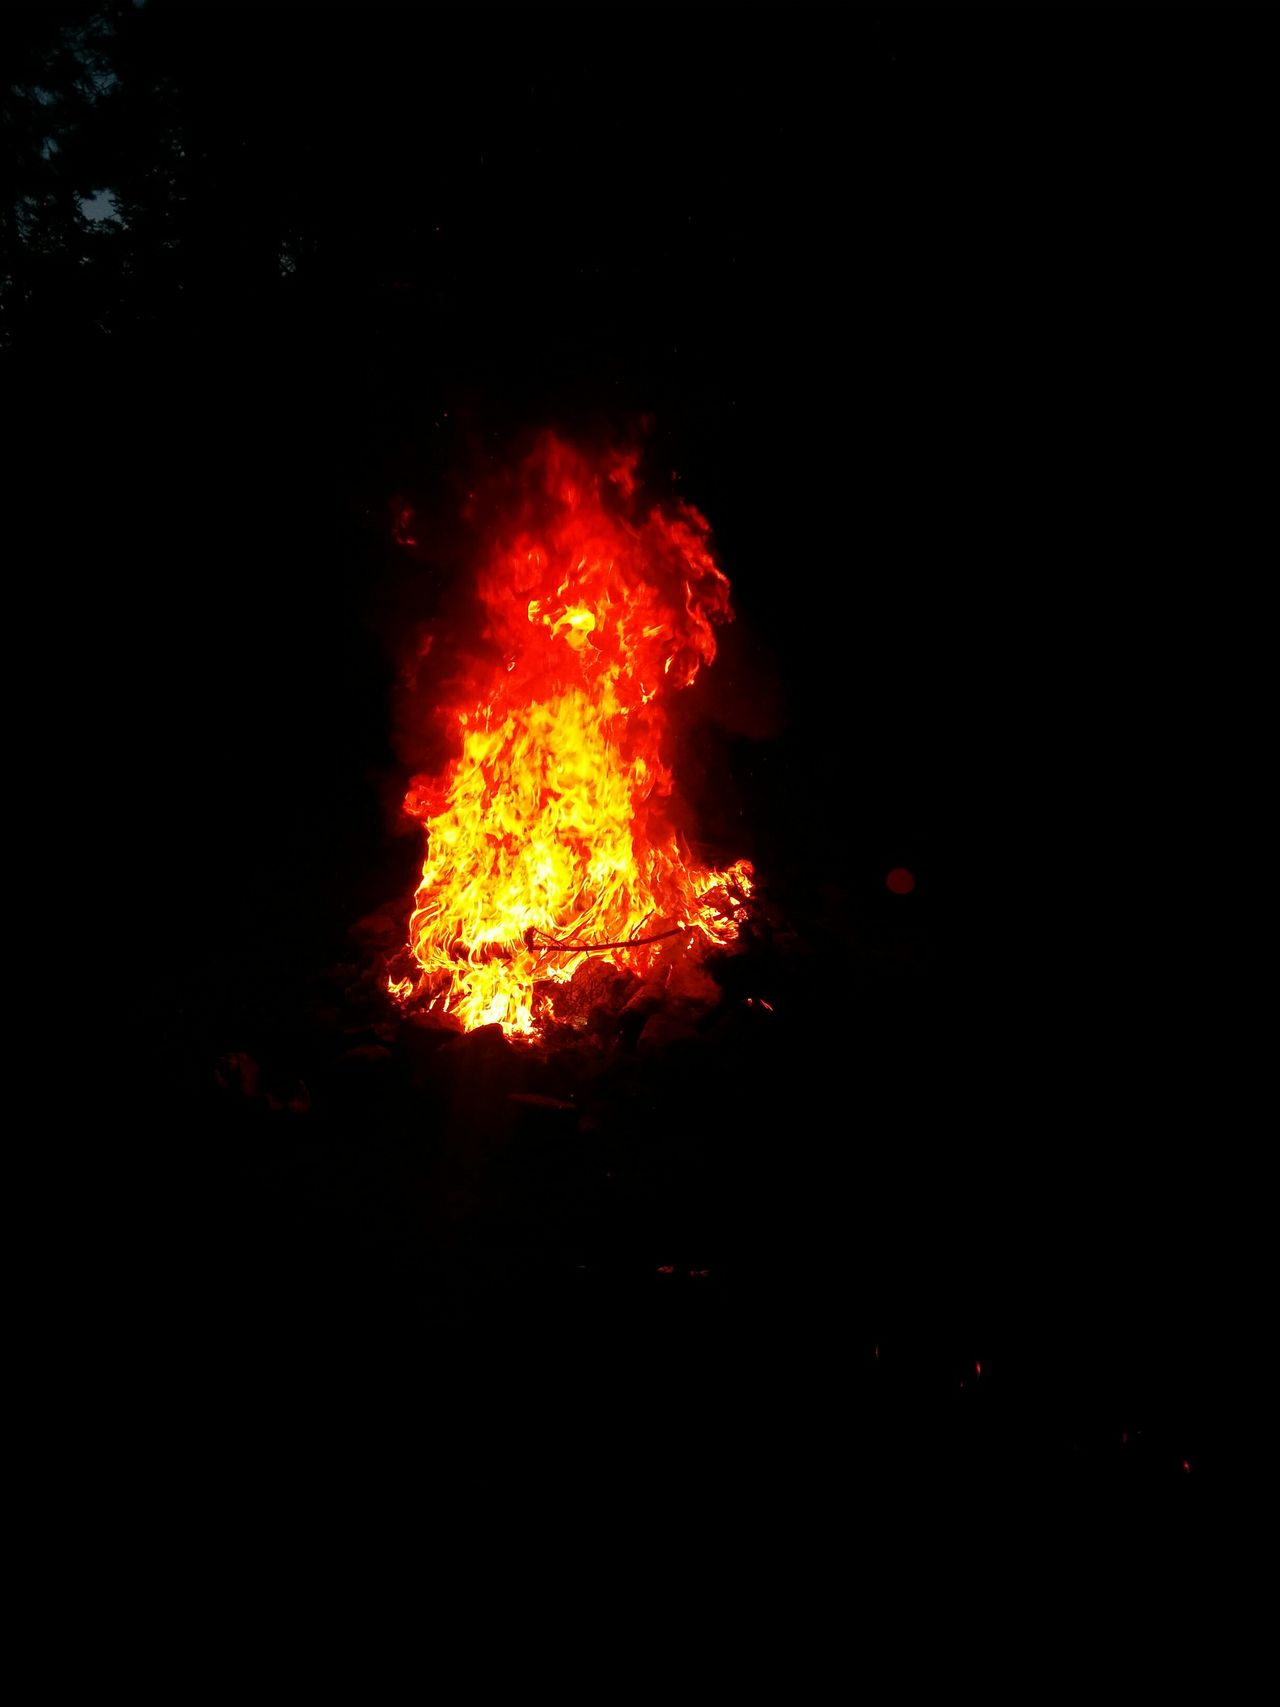 My_Photography Fire Bombfire Darkness And Light